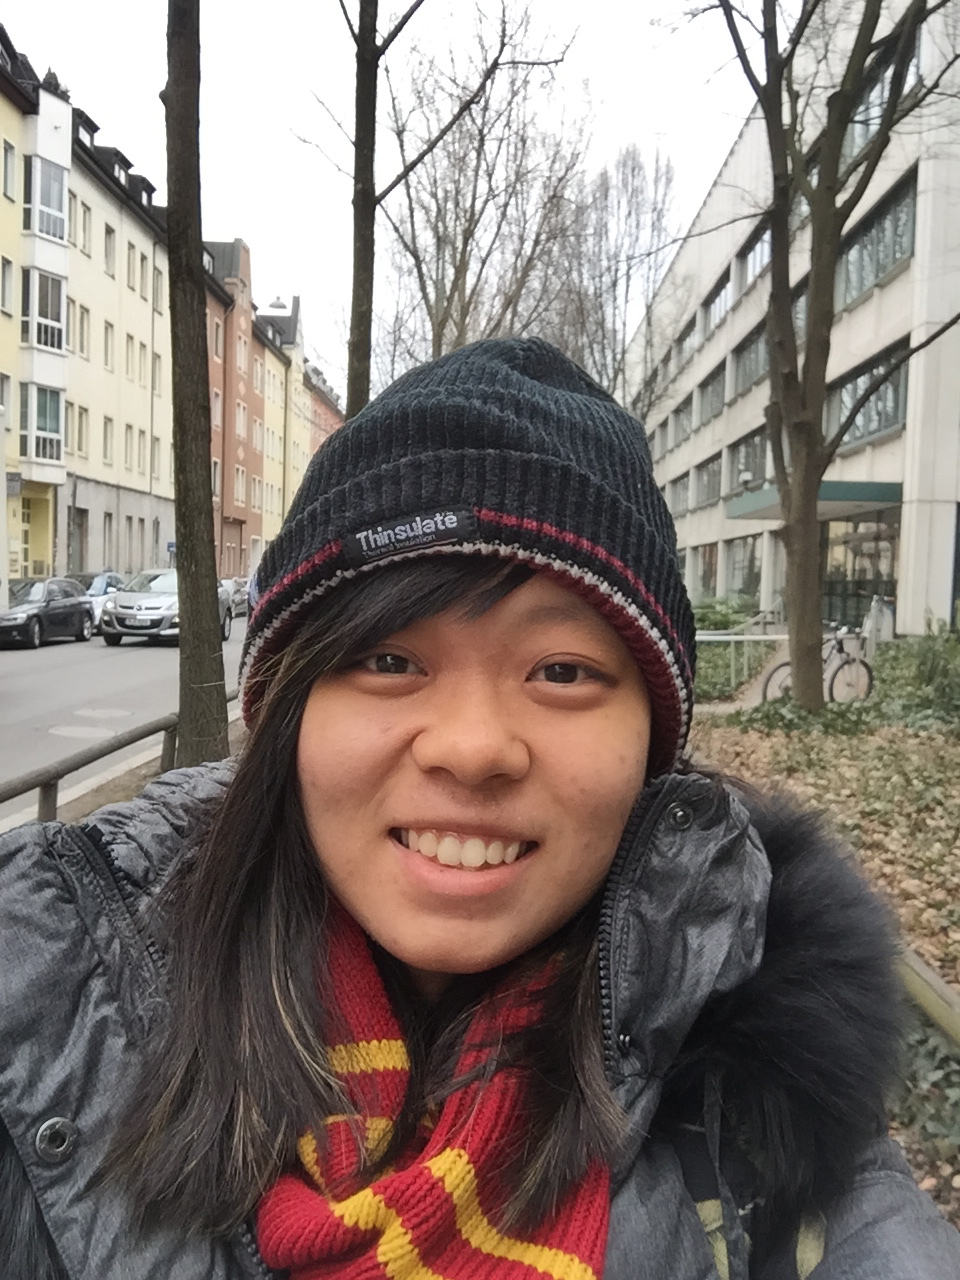 Hi from a street in Munich! It's really cold here now.